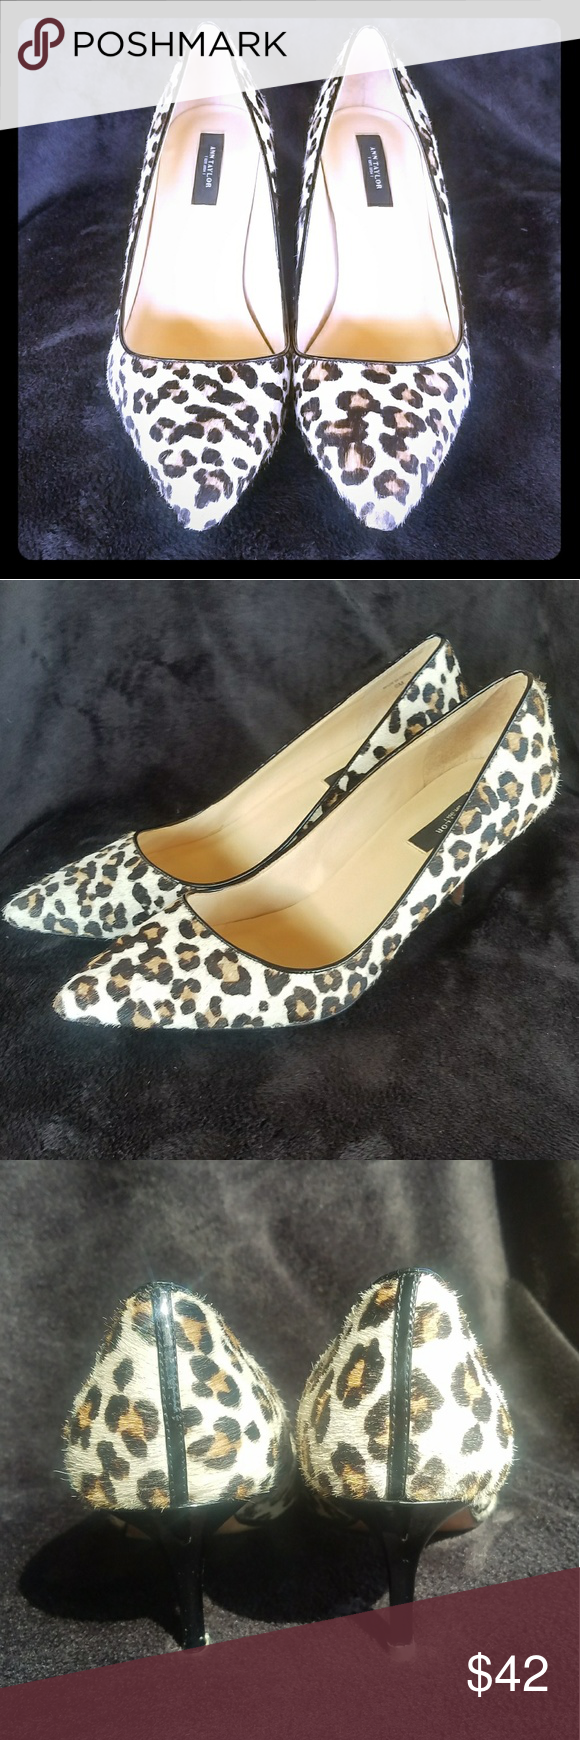 a57aedb57f07 Ann Taylor Reese Leopard Haircalf Pumps  9 MEOW! Leather soled ...